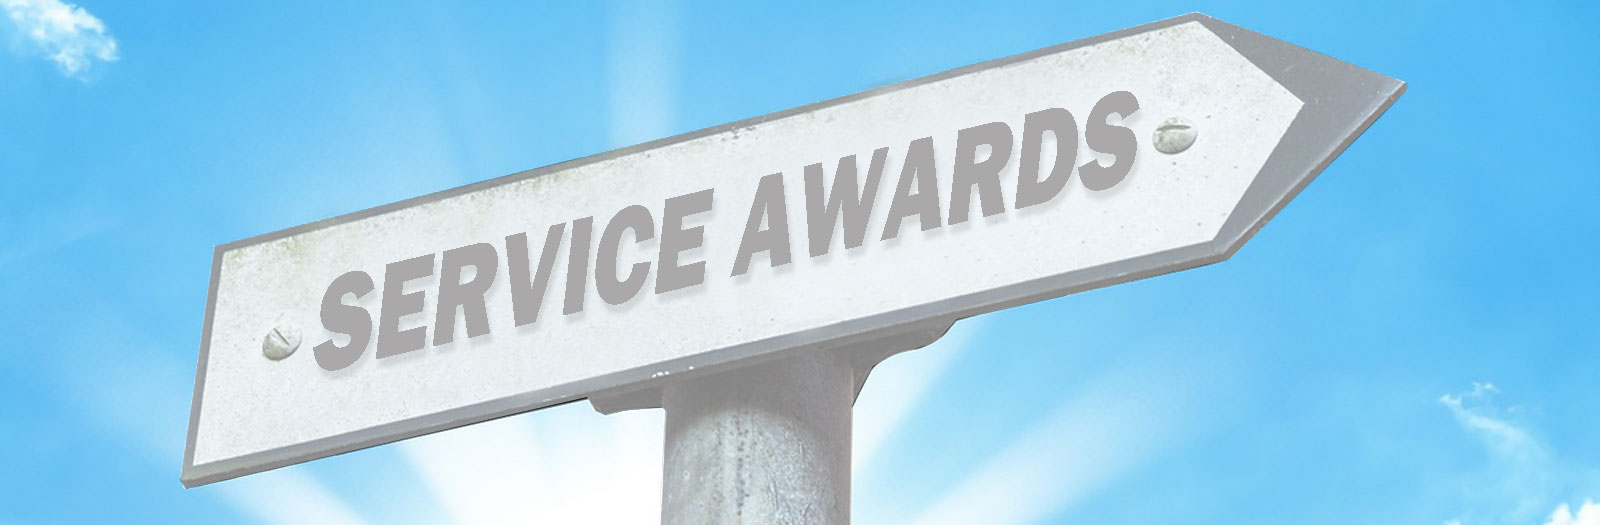 service-awards-blue-sky